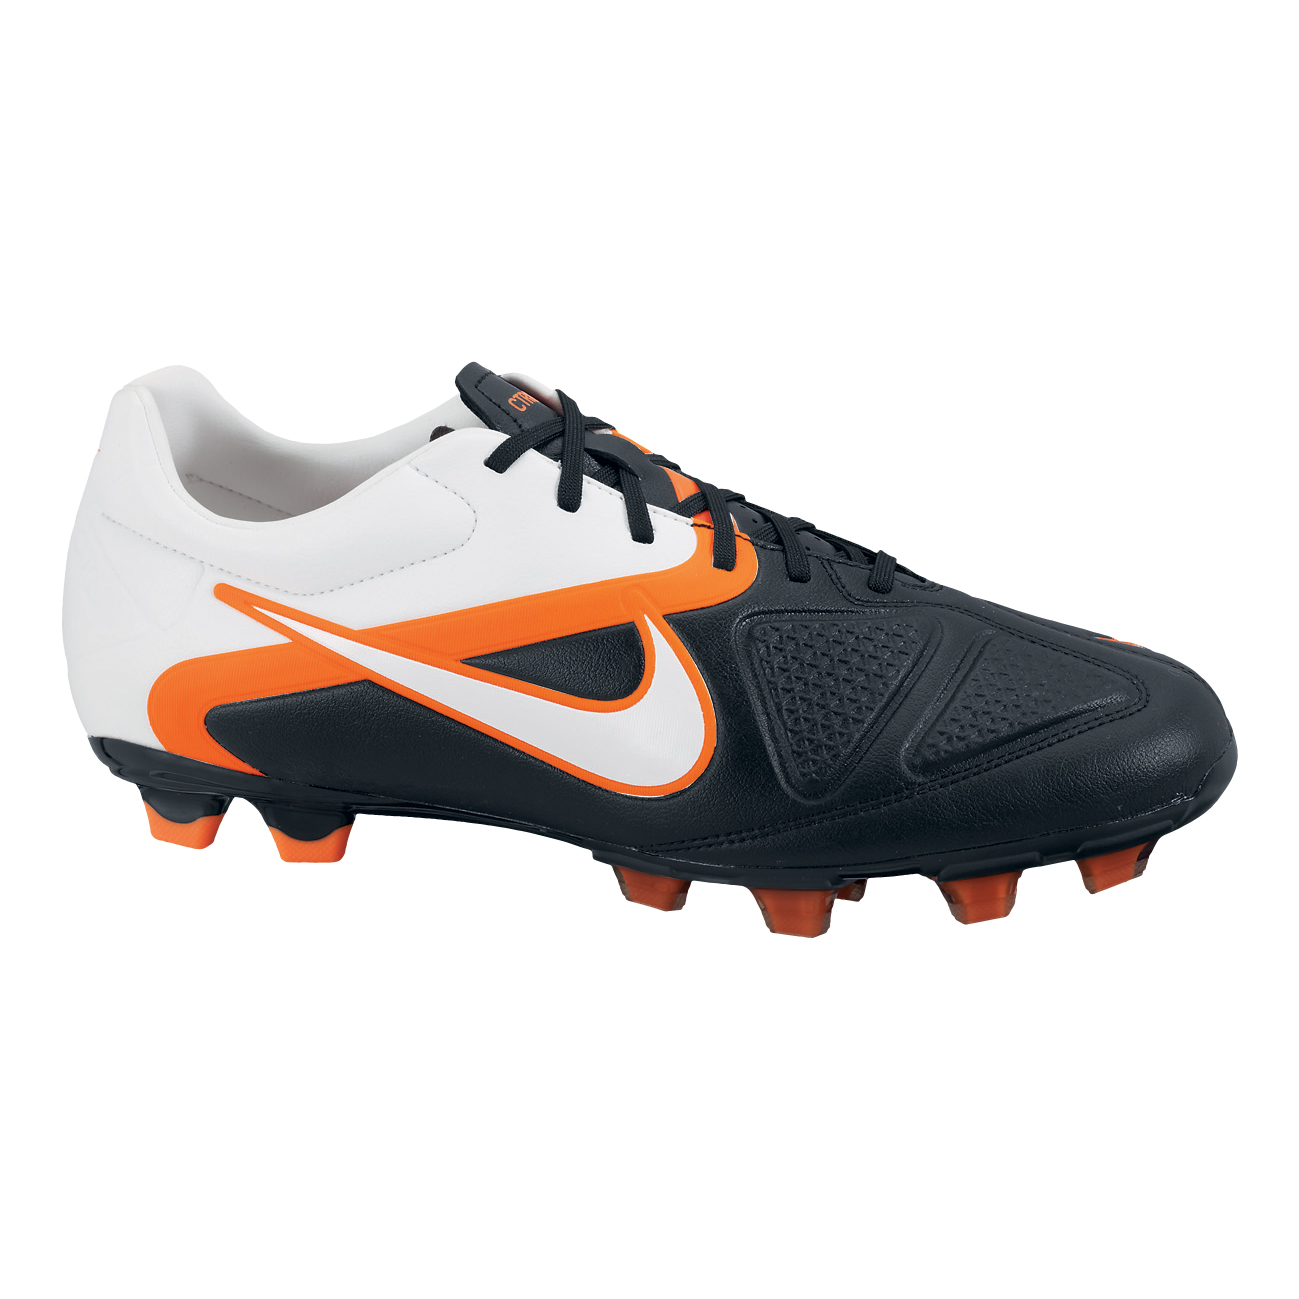 Nike CTR360 Trequartista II Firm Ground Football Boots - Black/White/Total Orange